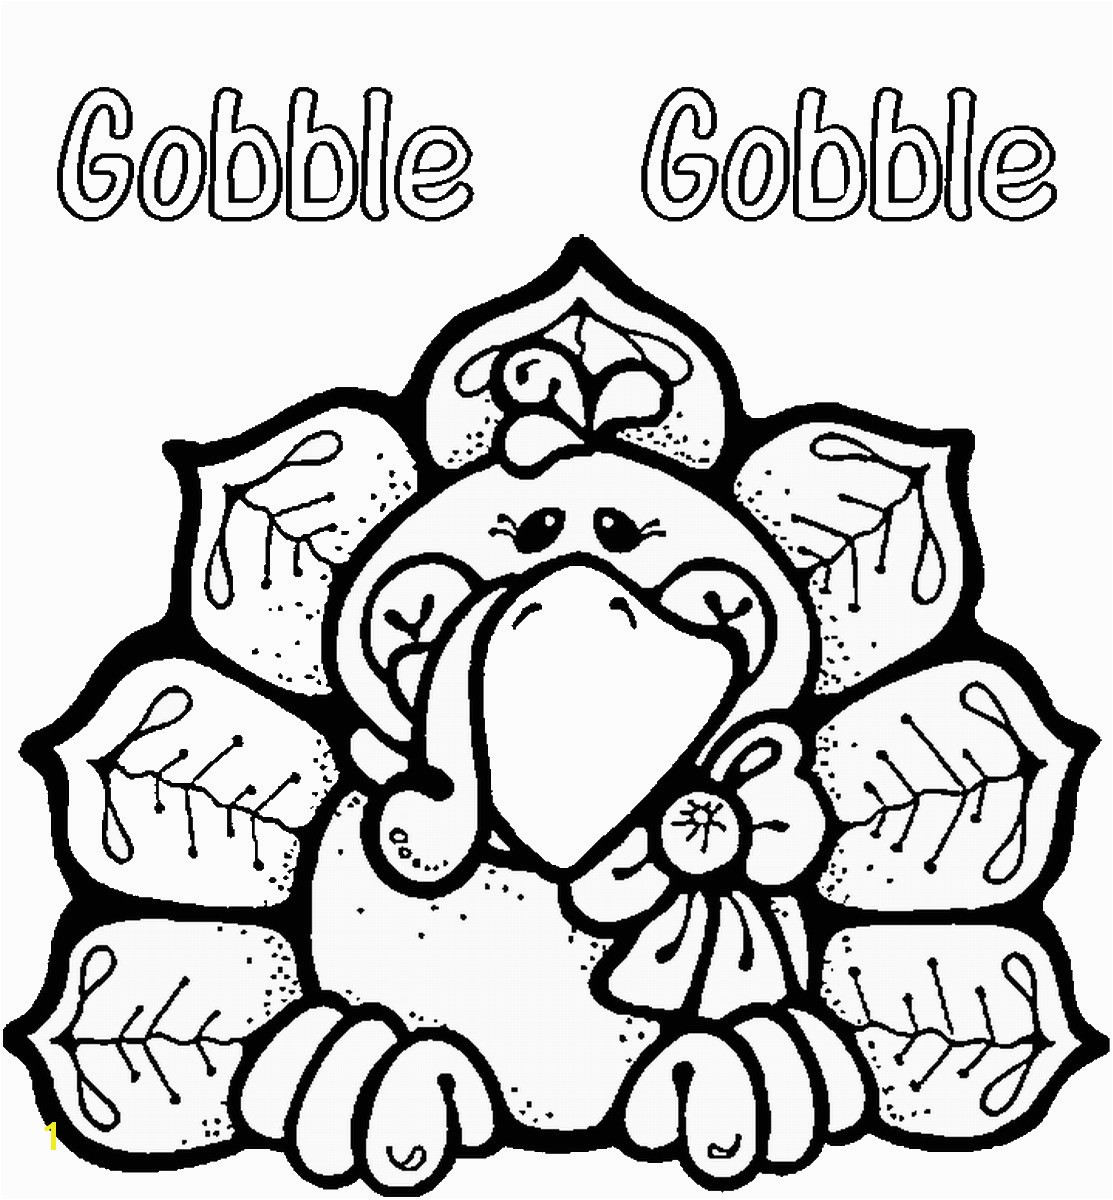 Automn Coloring Pages Autumn Coloring Pages Awesome Preschool Fall Coloring Pages Best